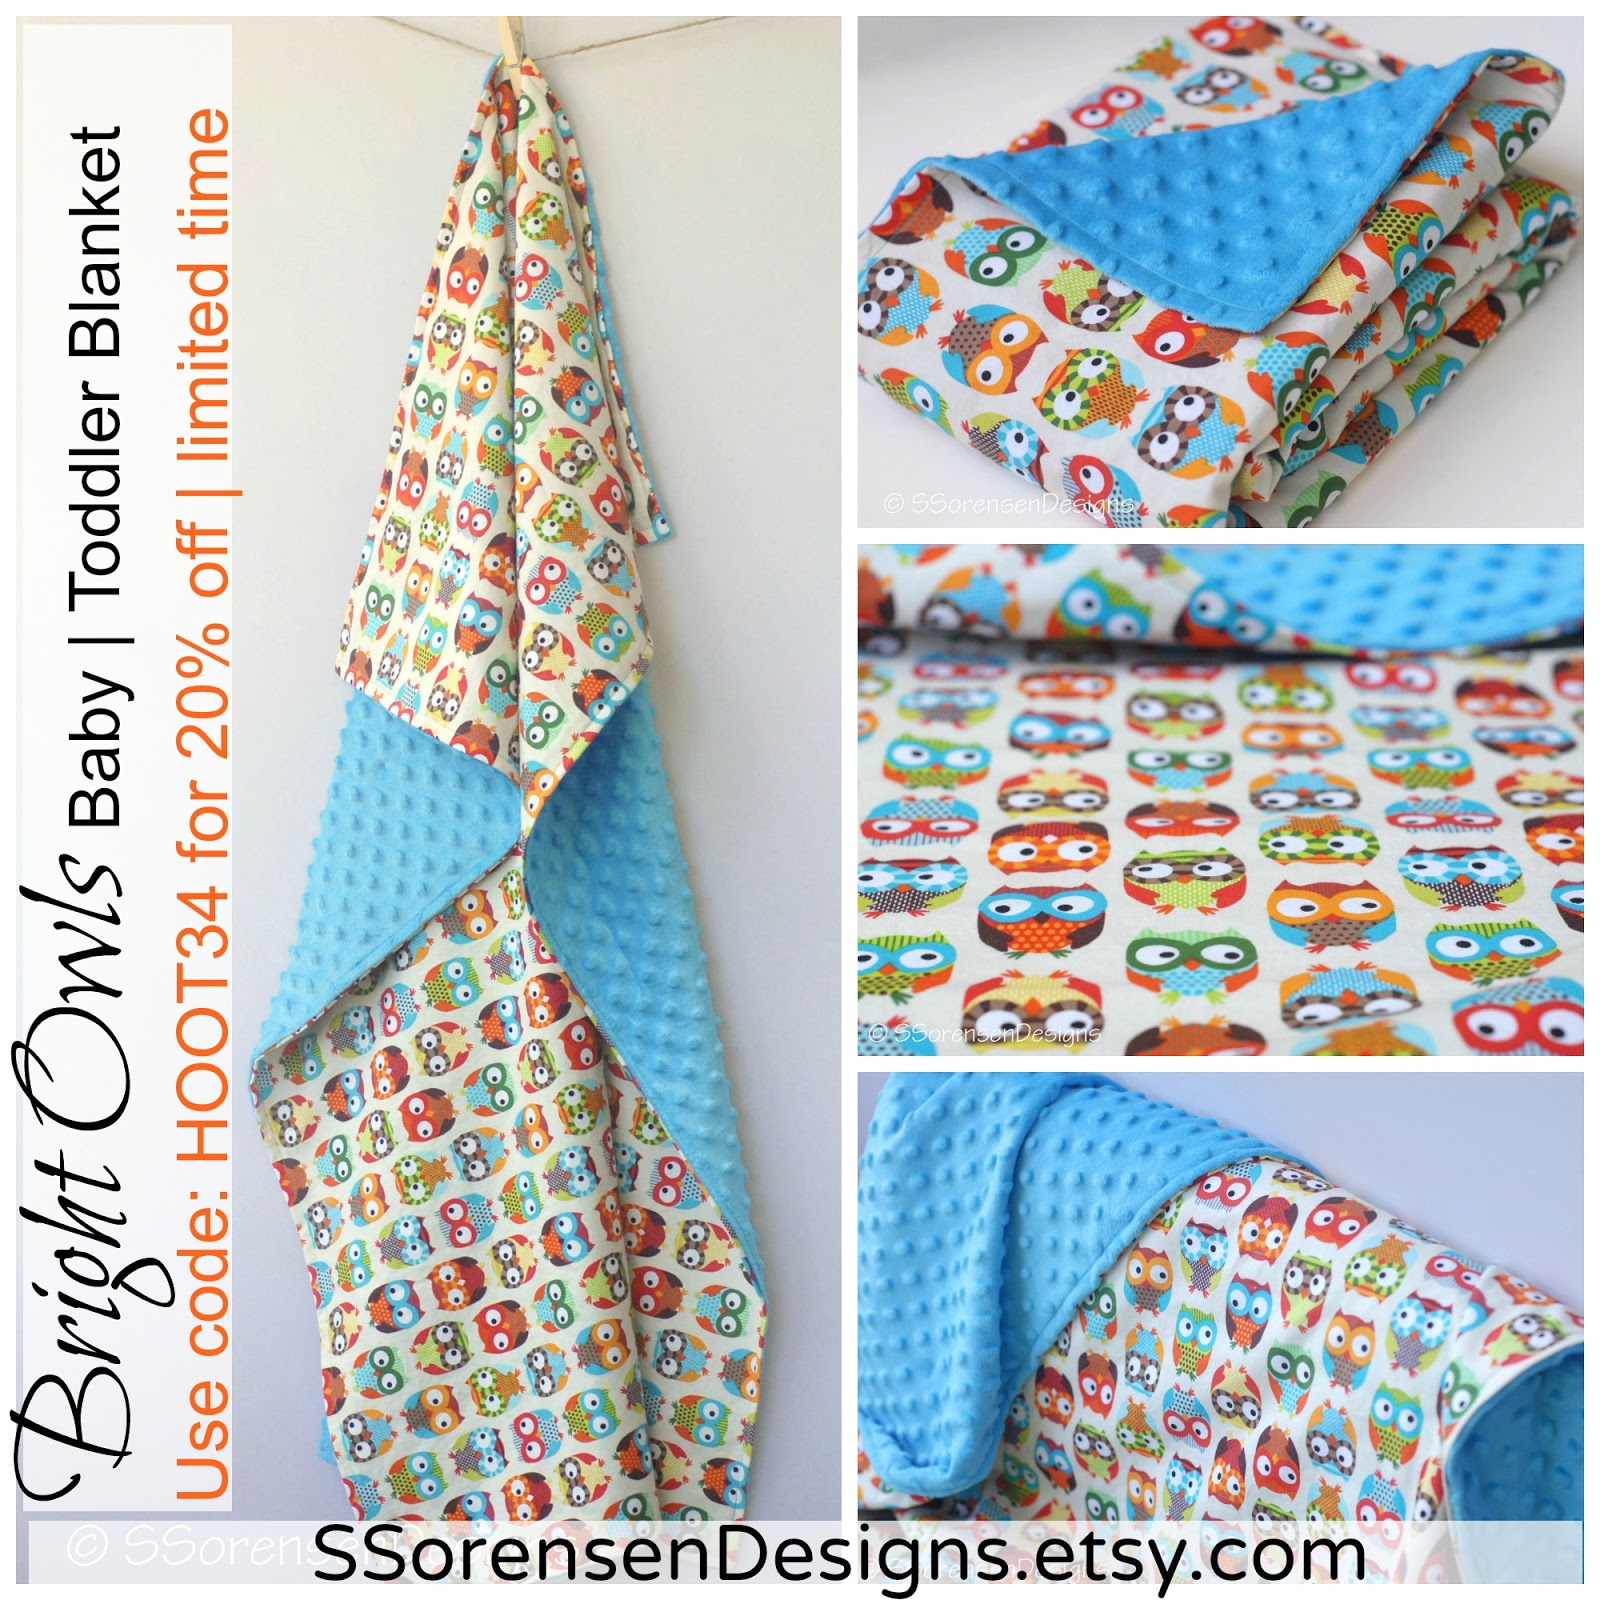 sale baby blanket toddler lovie discount sale coupon code etsy